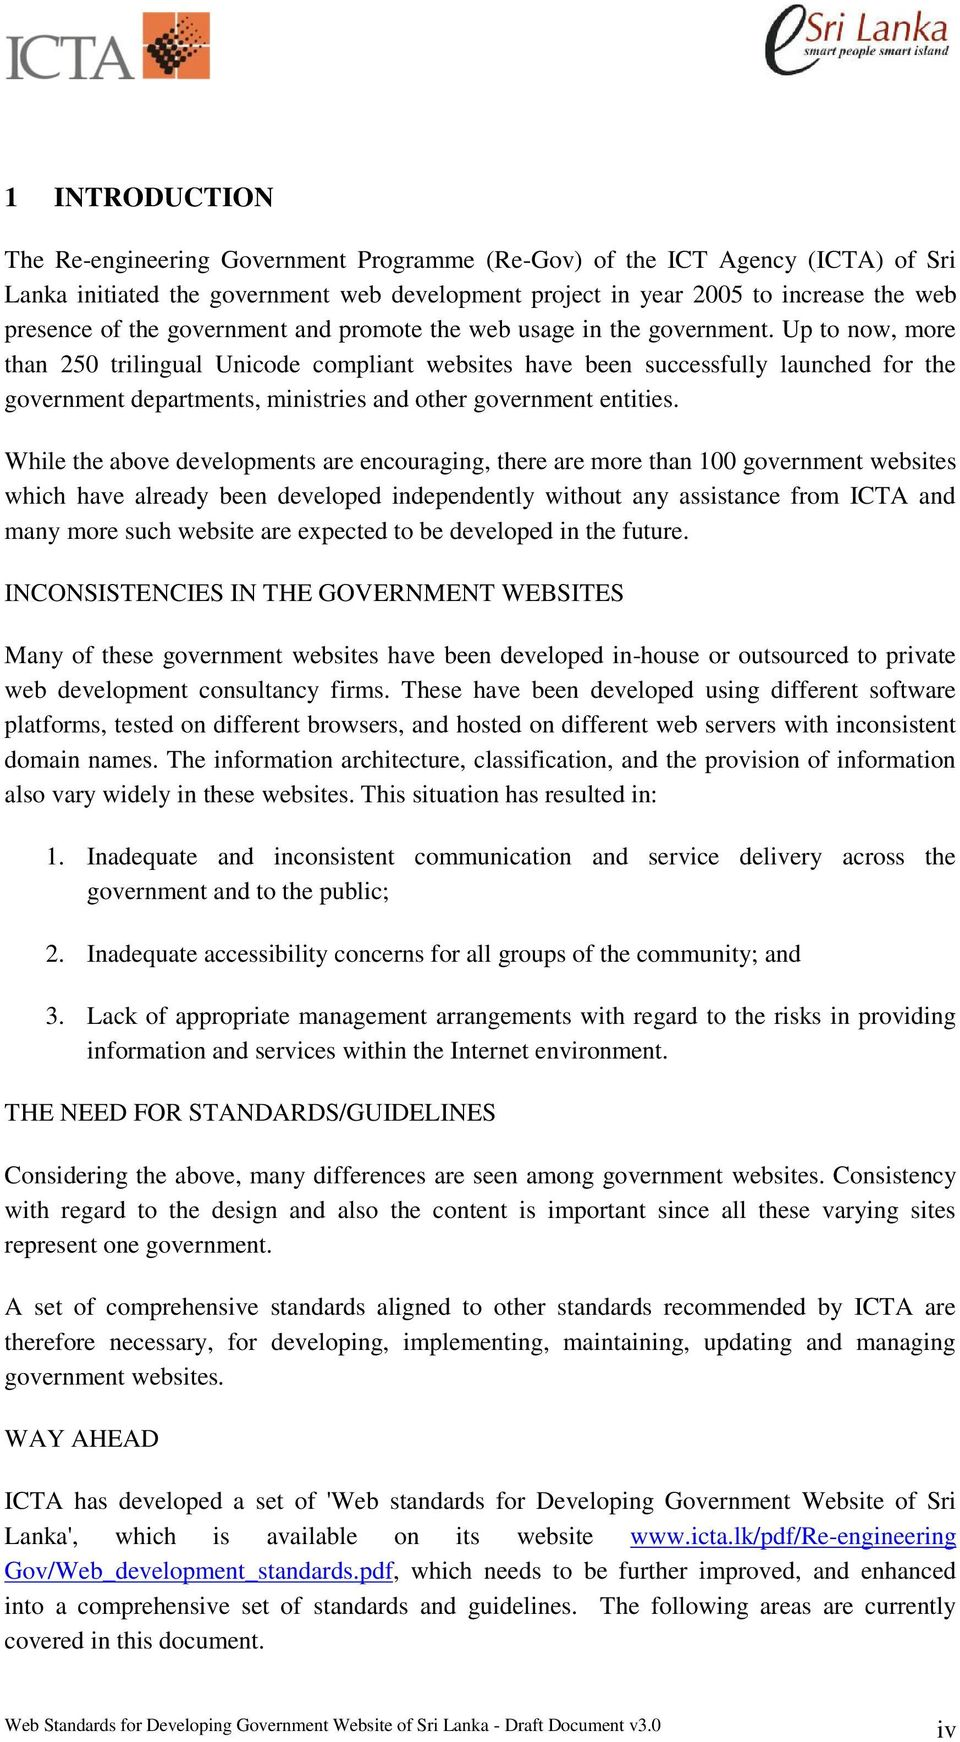 Web Standards  for  Developing Government Website of Sri